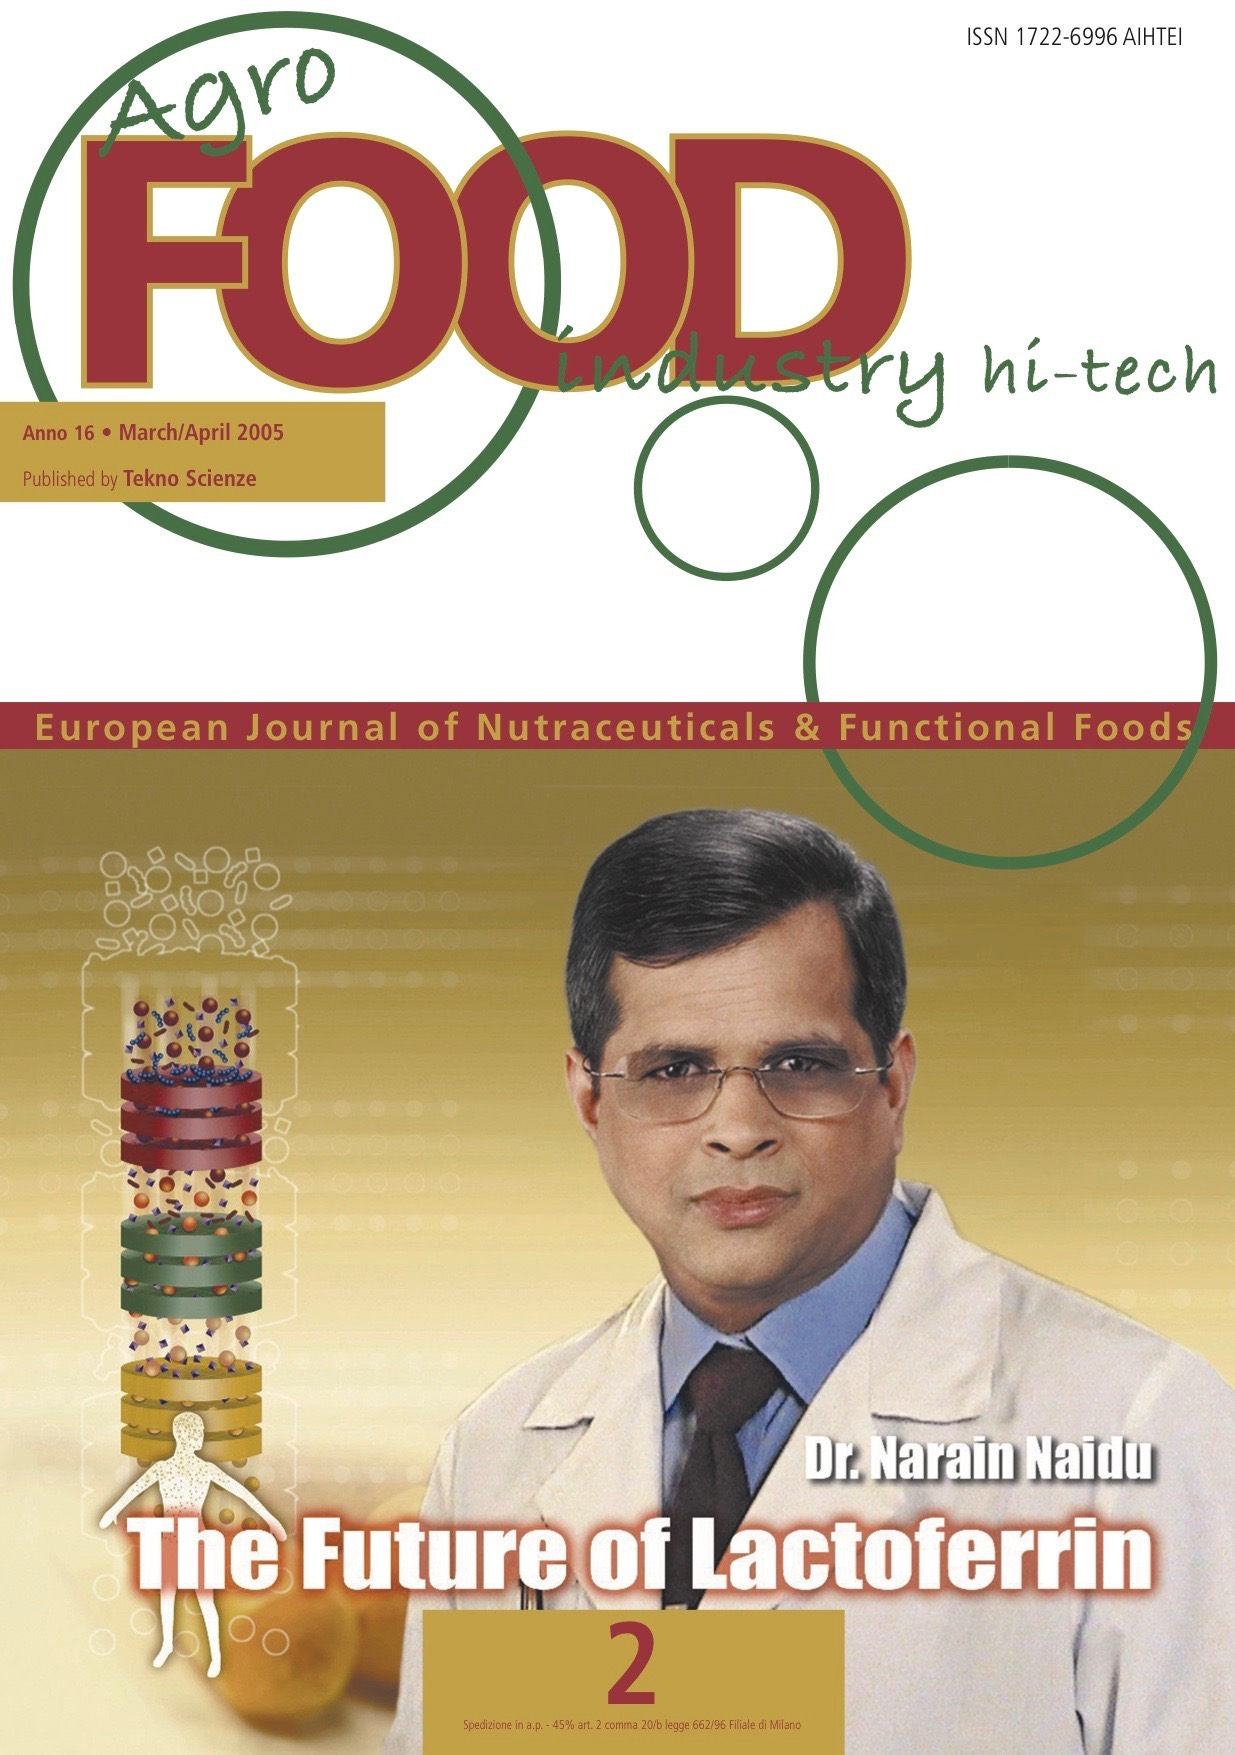 Agro Food Journal cover story - Dr. Naidu the future of lactoferrin